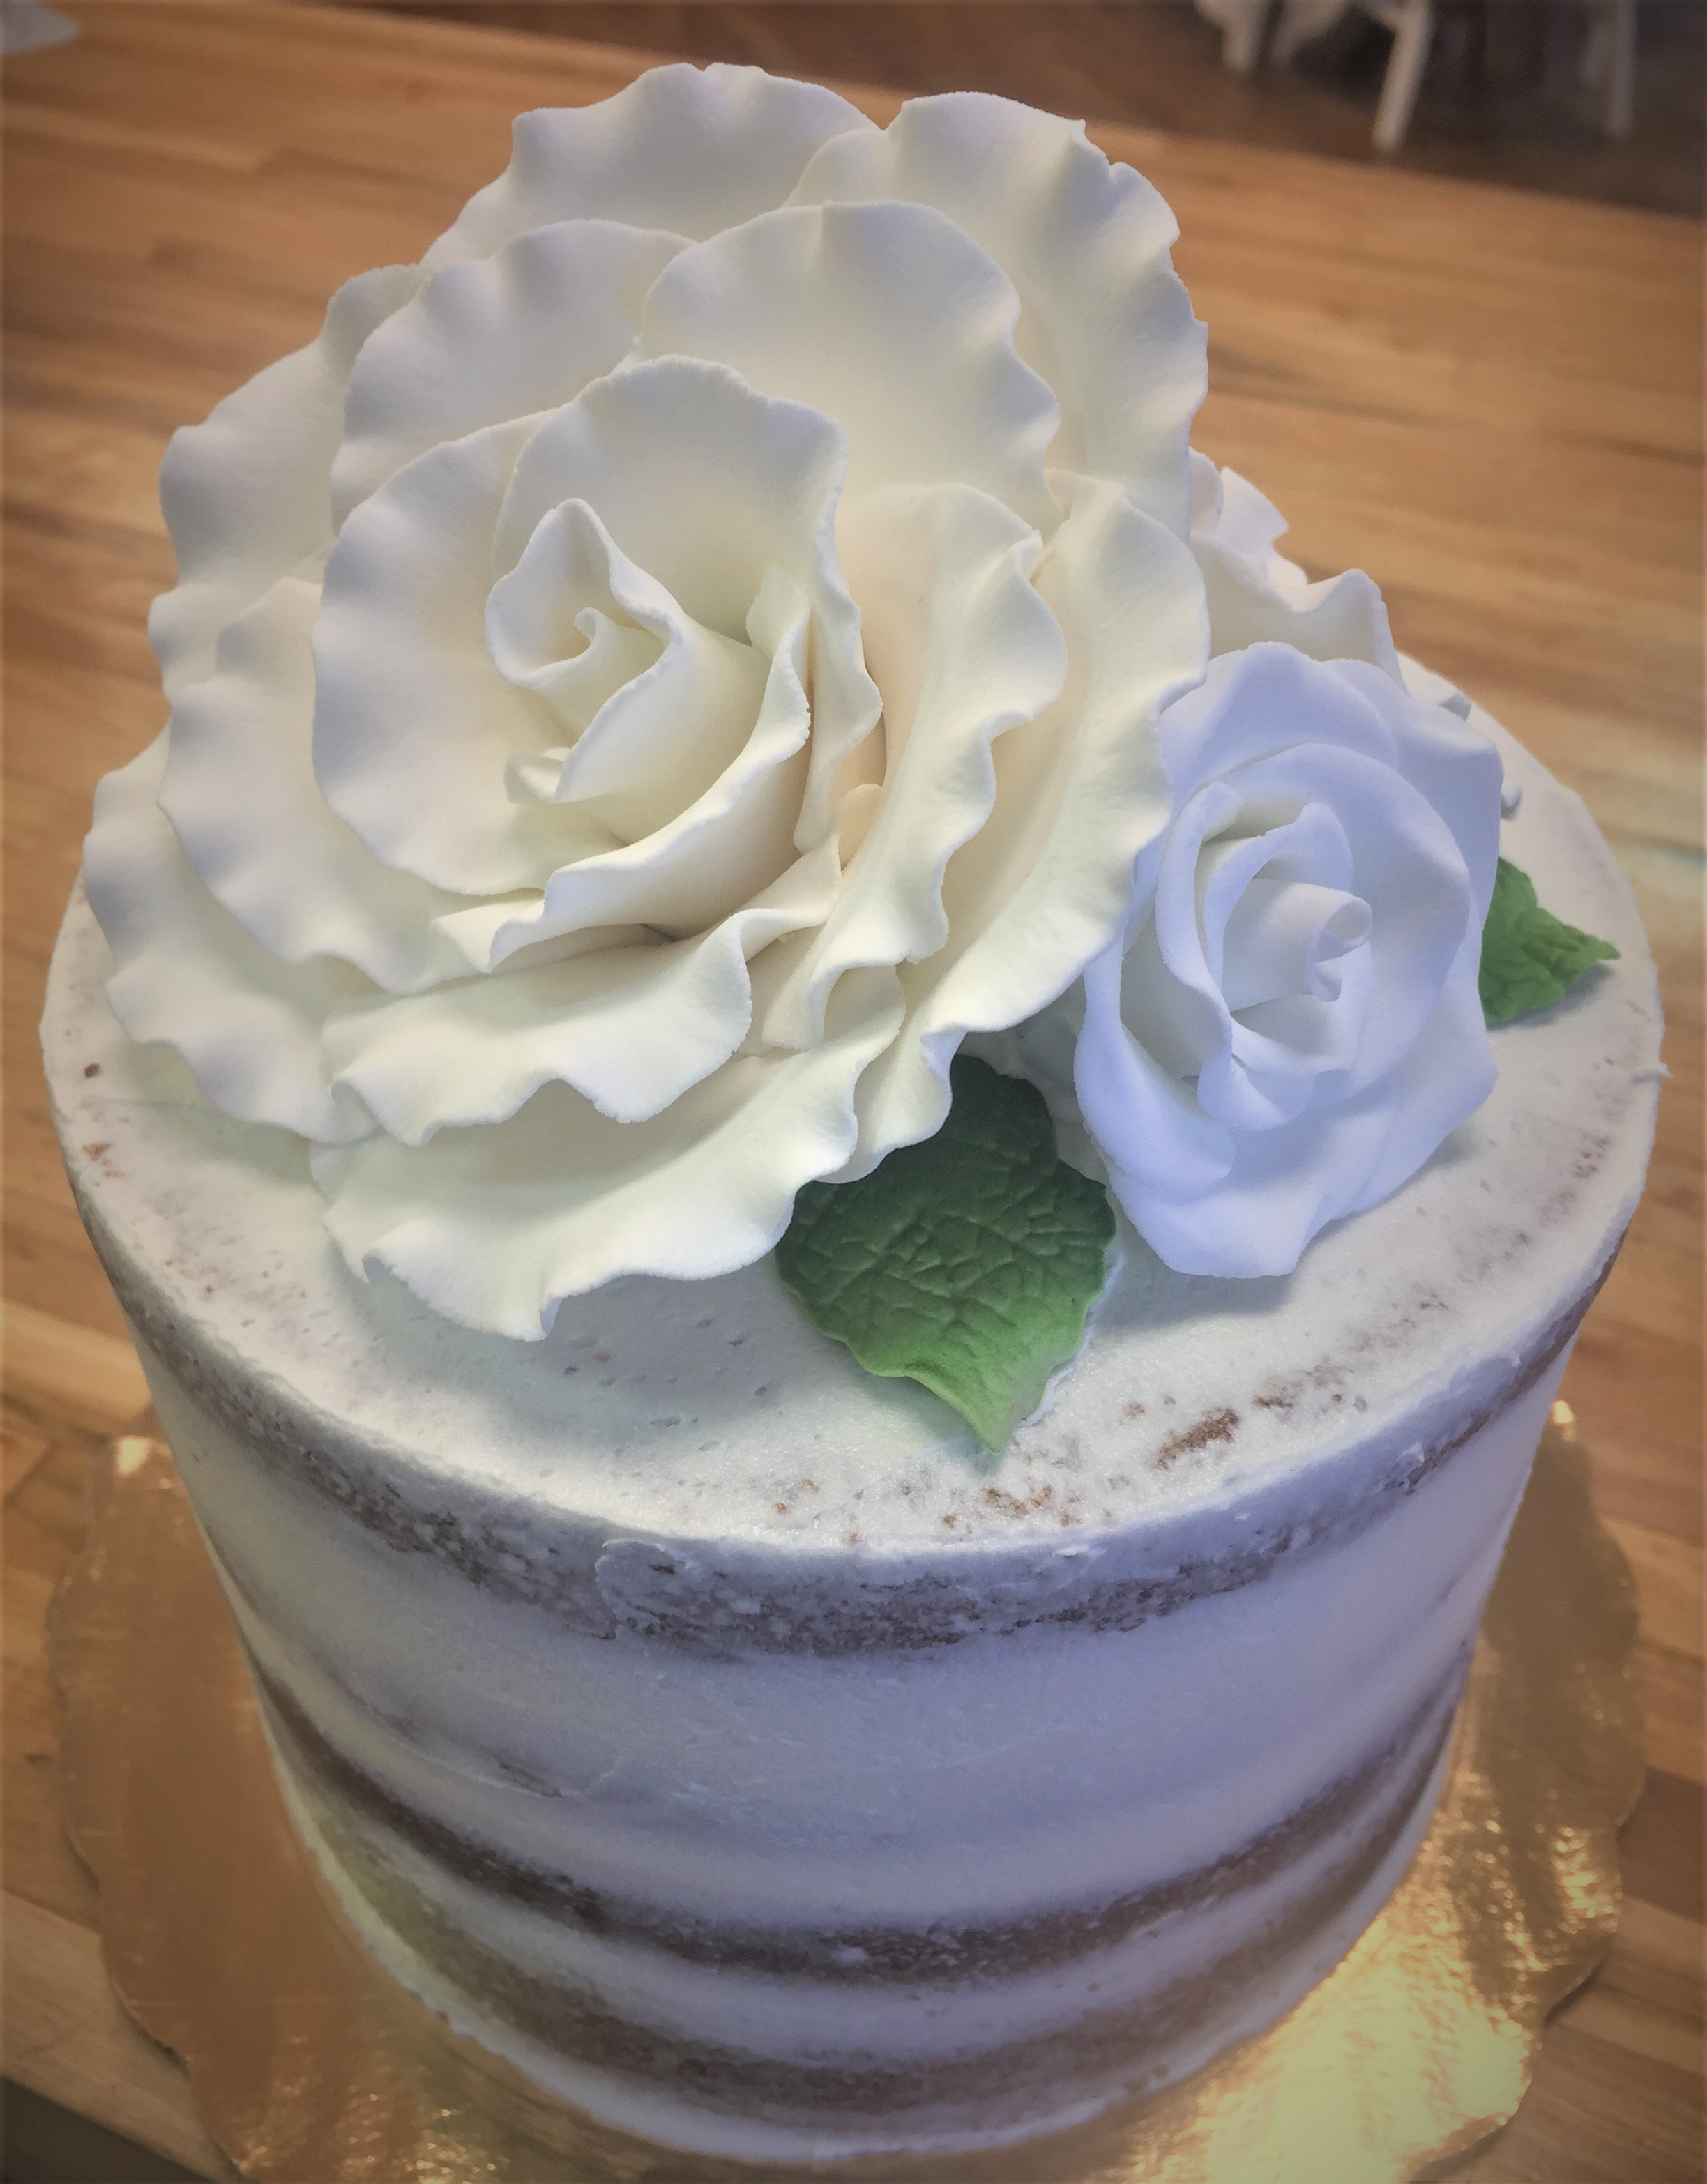 Gateaux Bakery & Cafe Rustic Cake Lightly Frosted Buttercream with Flowers.JPG